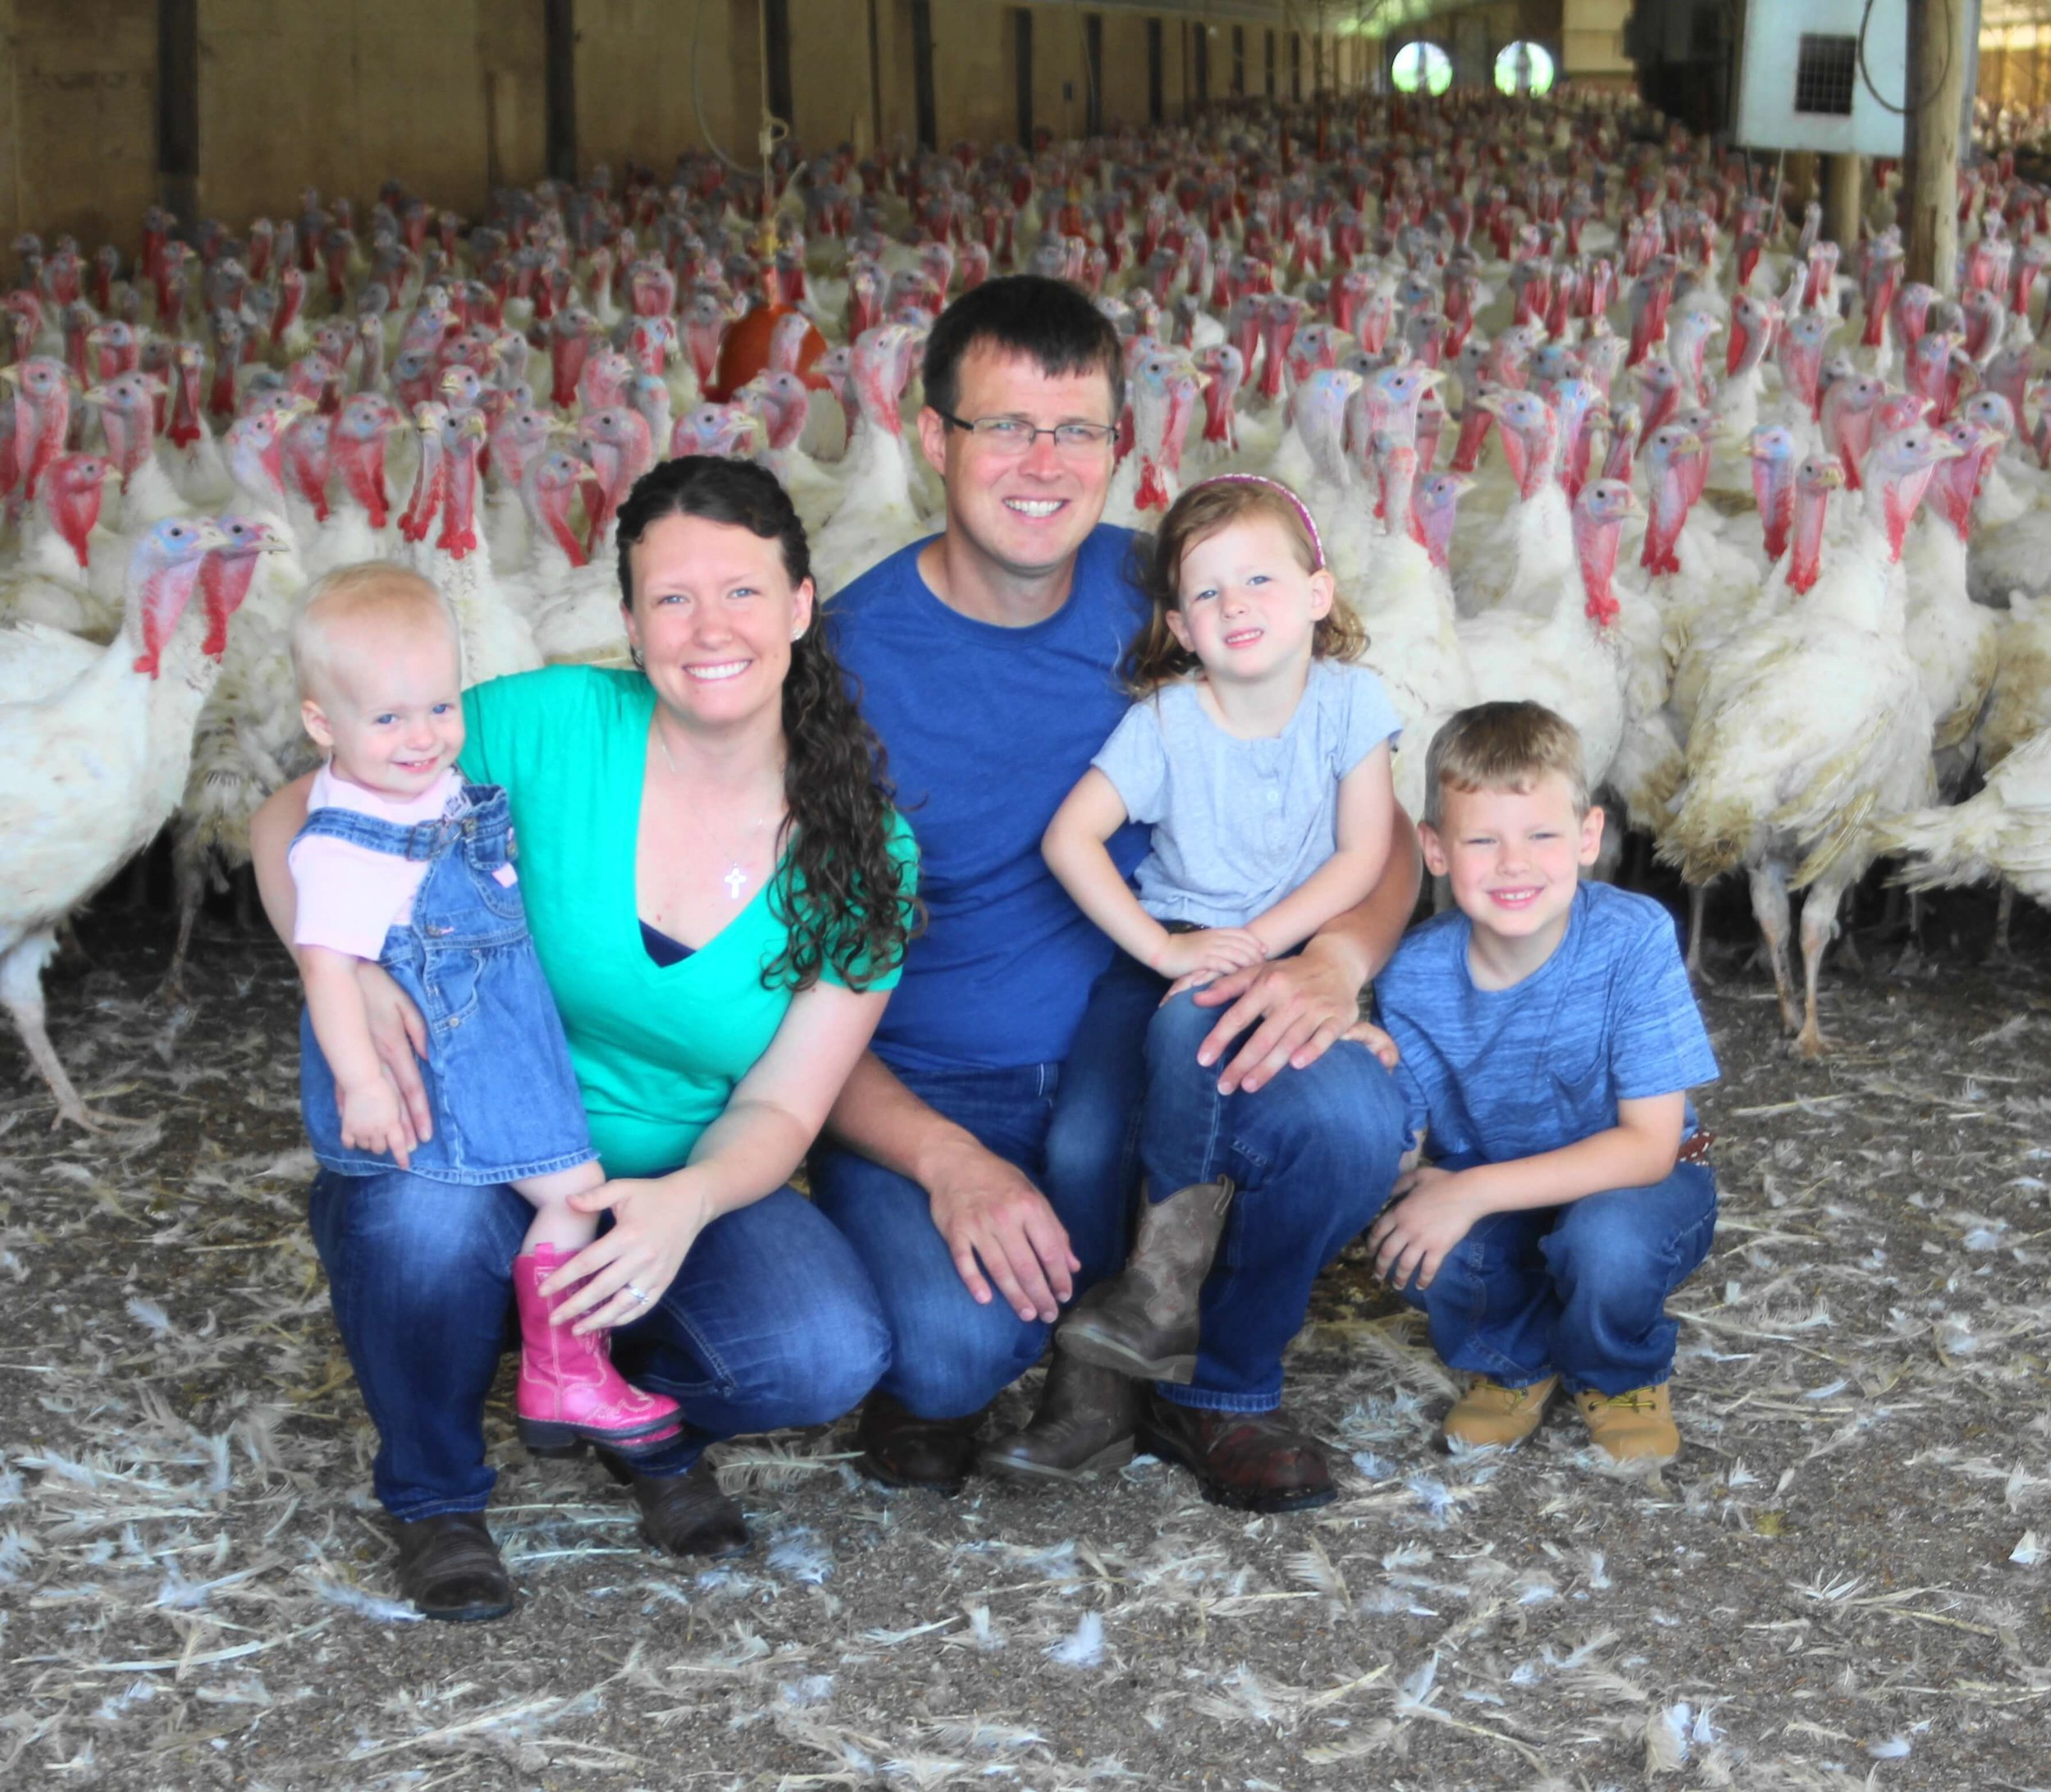 Katie and Nick Hermanson with their children Lucille, 2; Charlotte, 5; Gavin, 7. The Hermansons are fifth generation farmers who live in Story City. Photo credit: Iowa State Fair